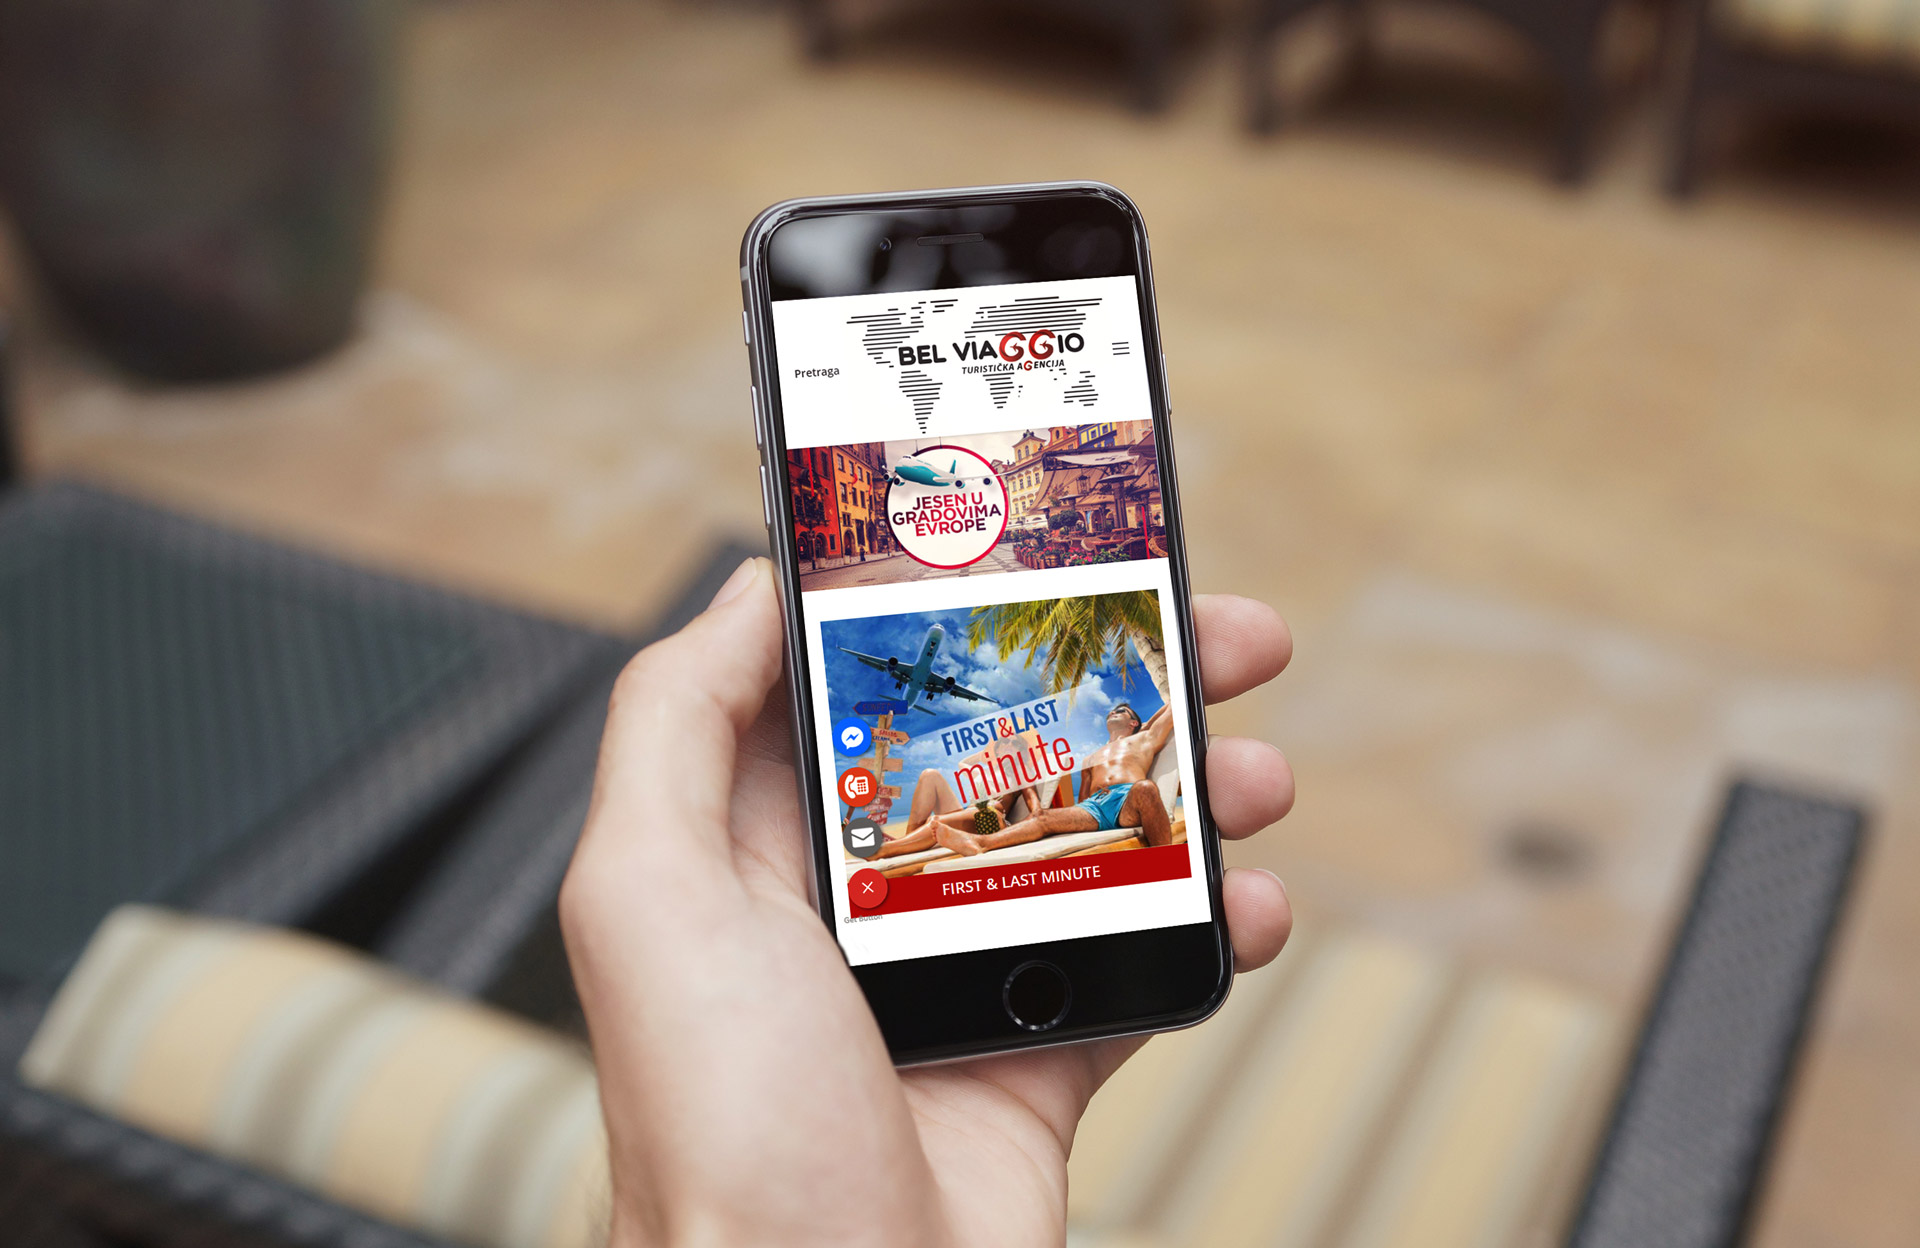 belviaggio travel agency mobile design